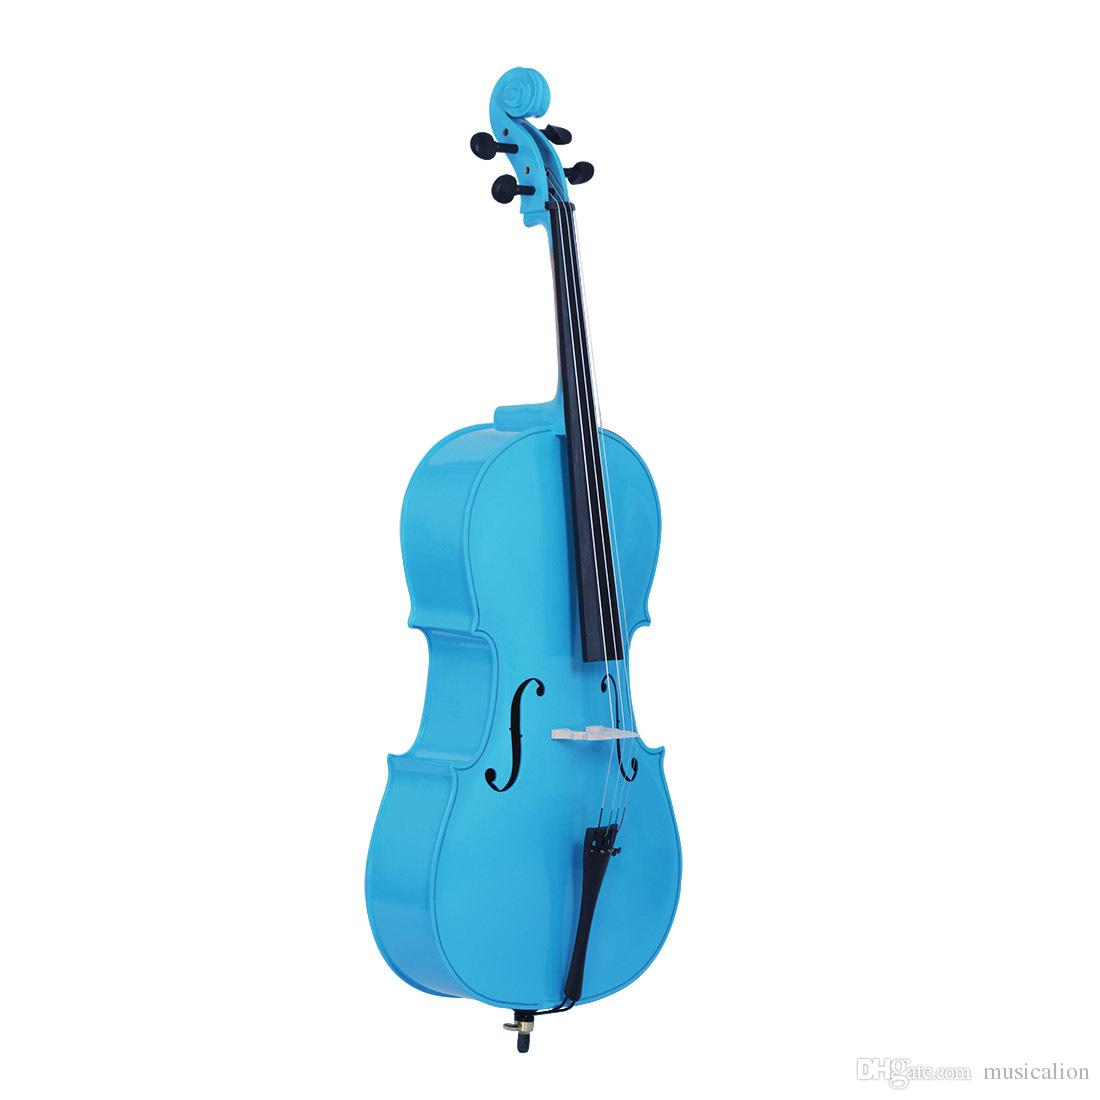 Blue Cello Beginners Practice Cello NZ 2020 From Musicalion, NZ ...